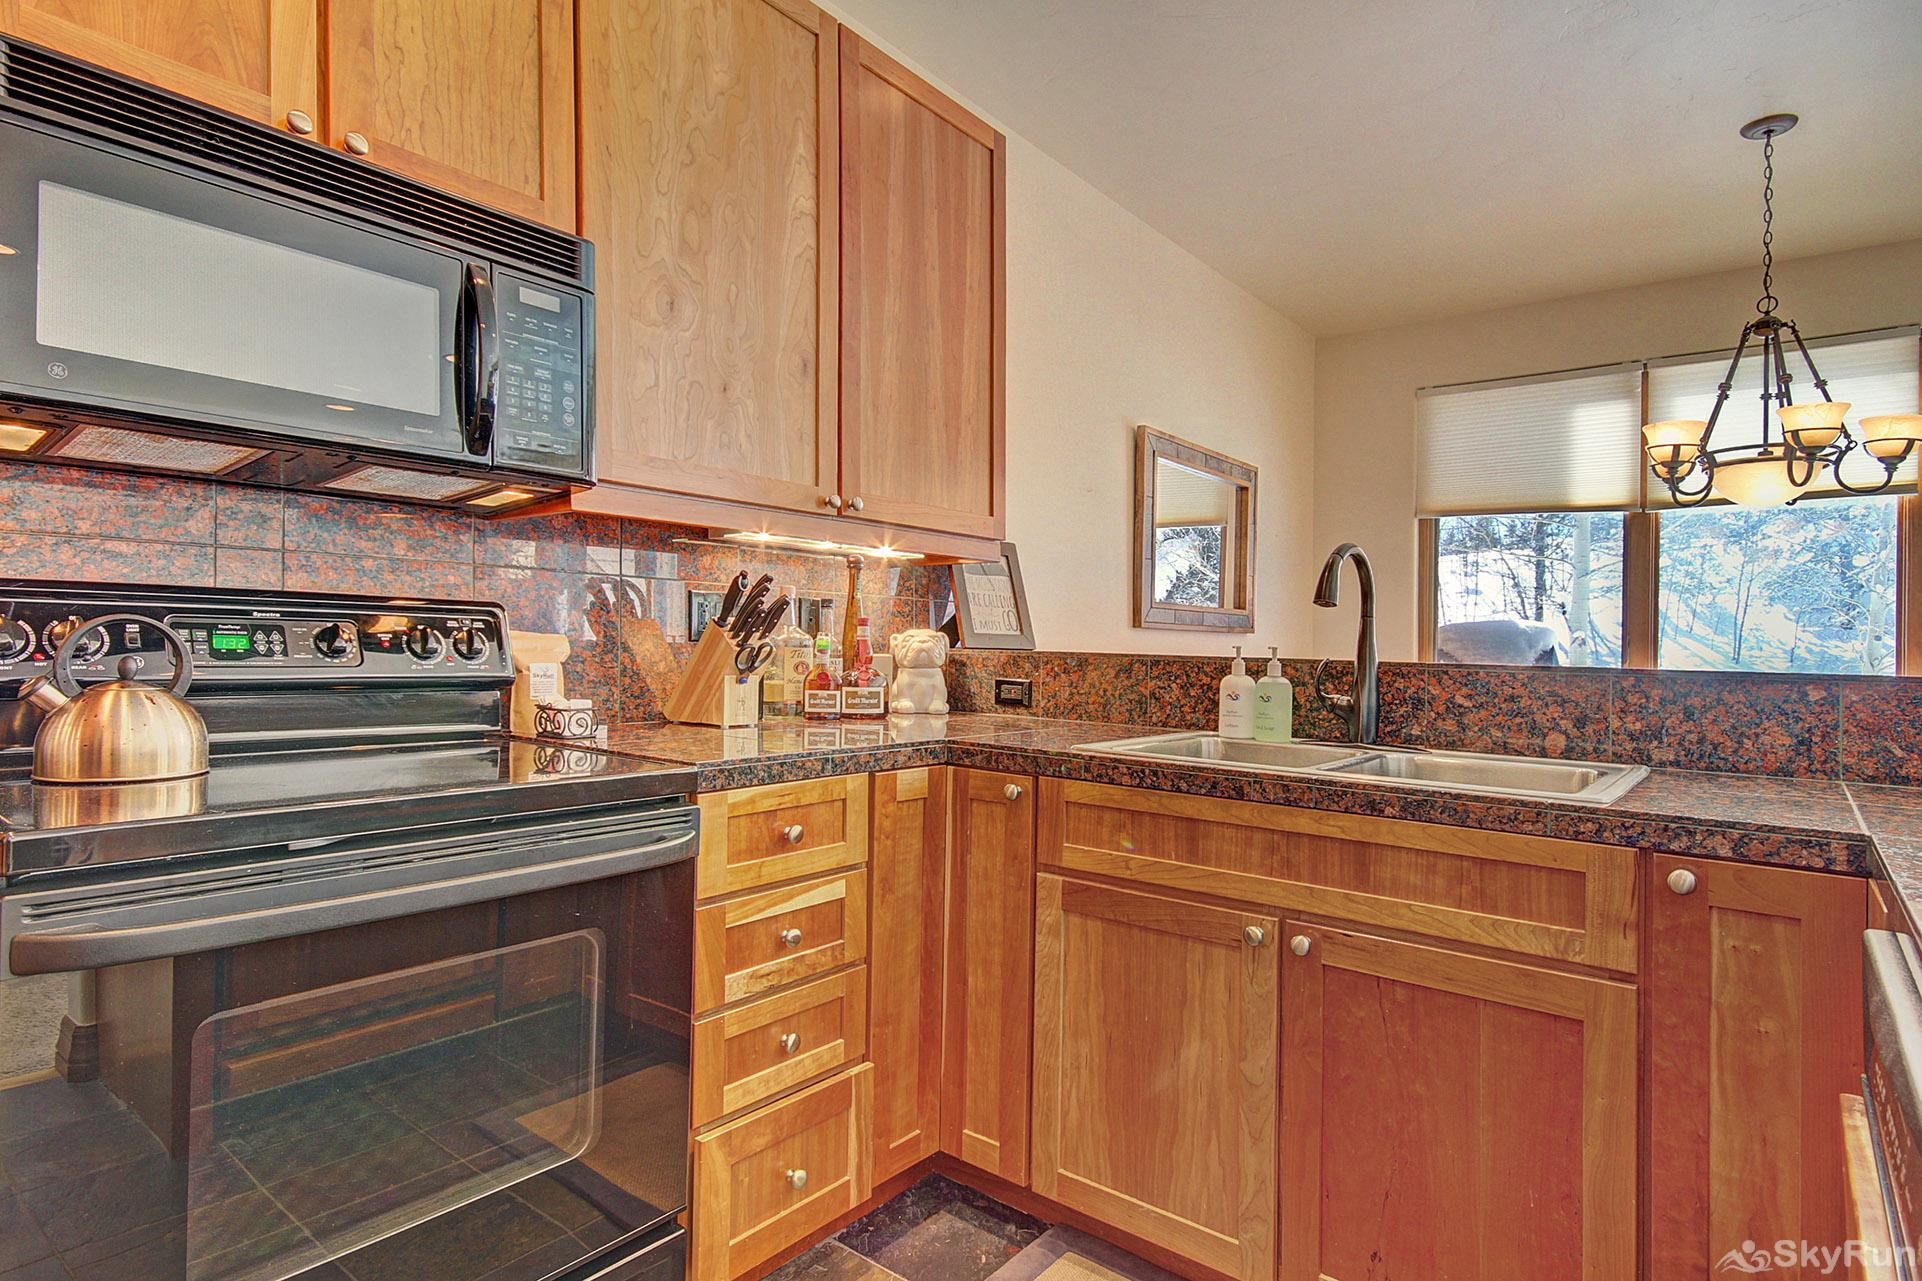 Highland Greens Pine Modern kitchen features full size stove, fridge and dishwasher